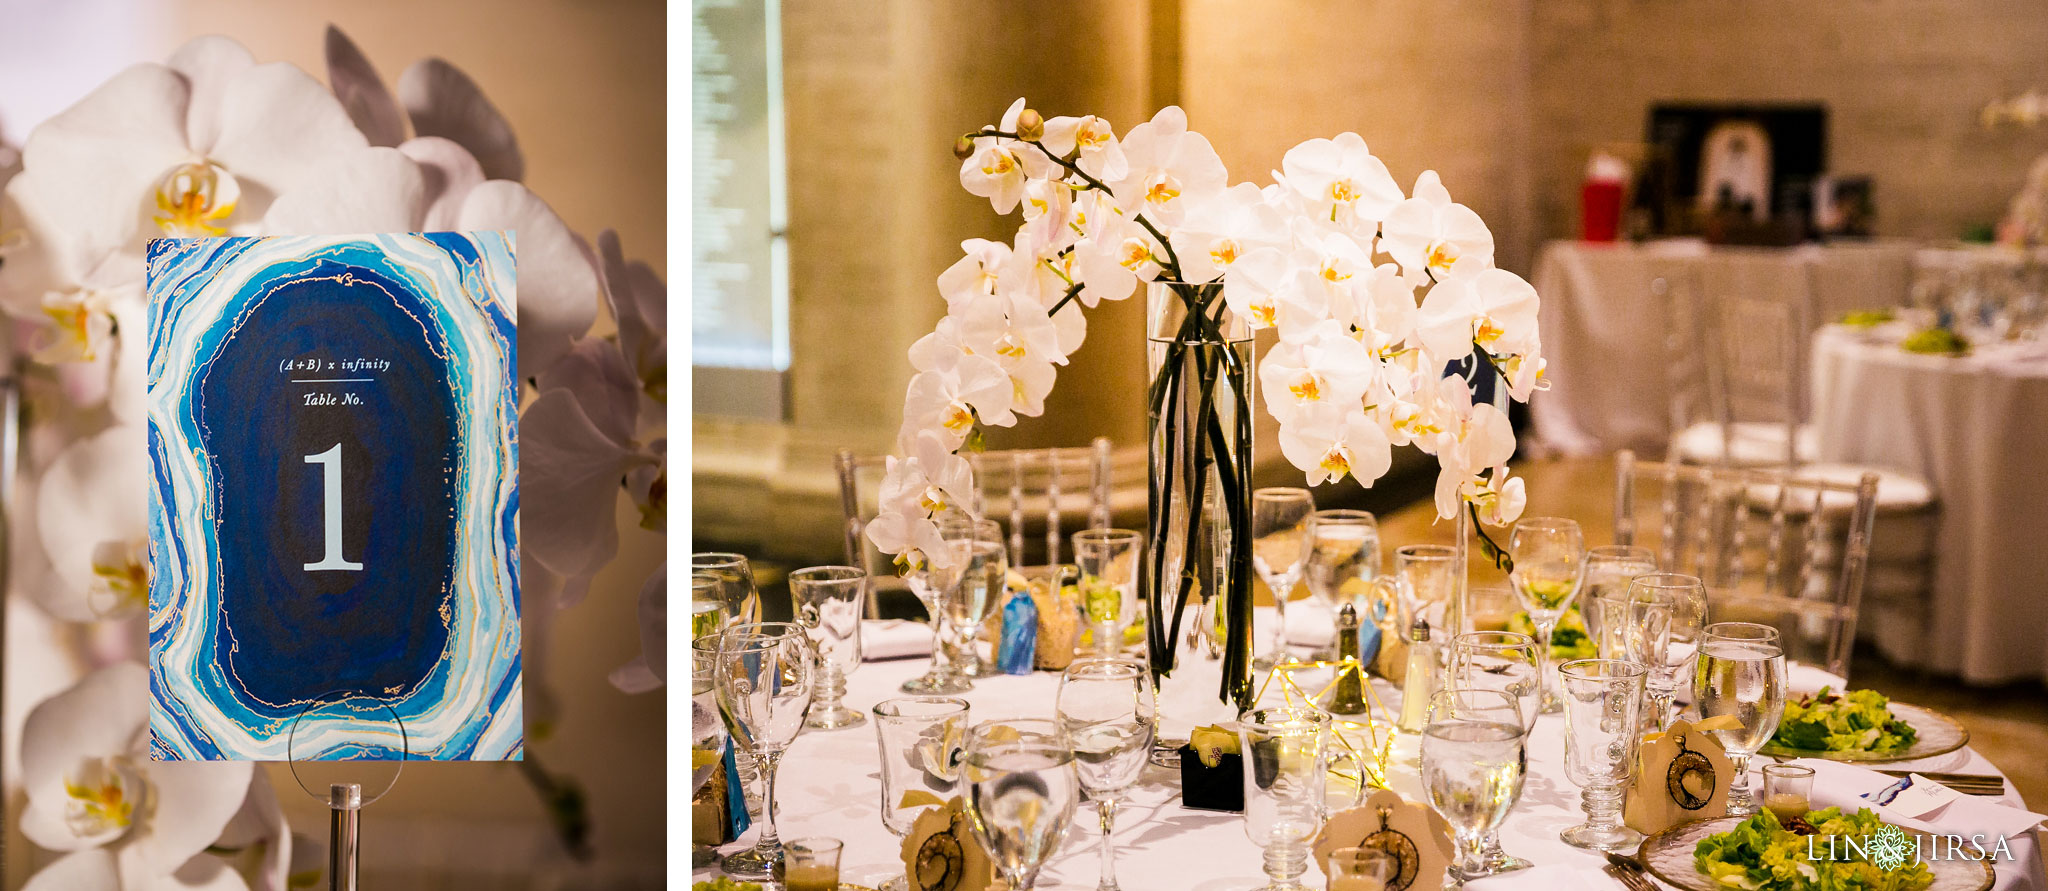 23 los angeles natural history museum wedding photography